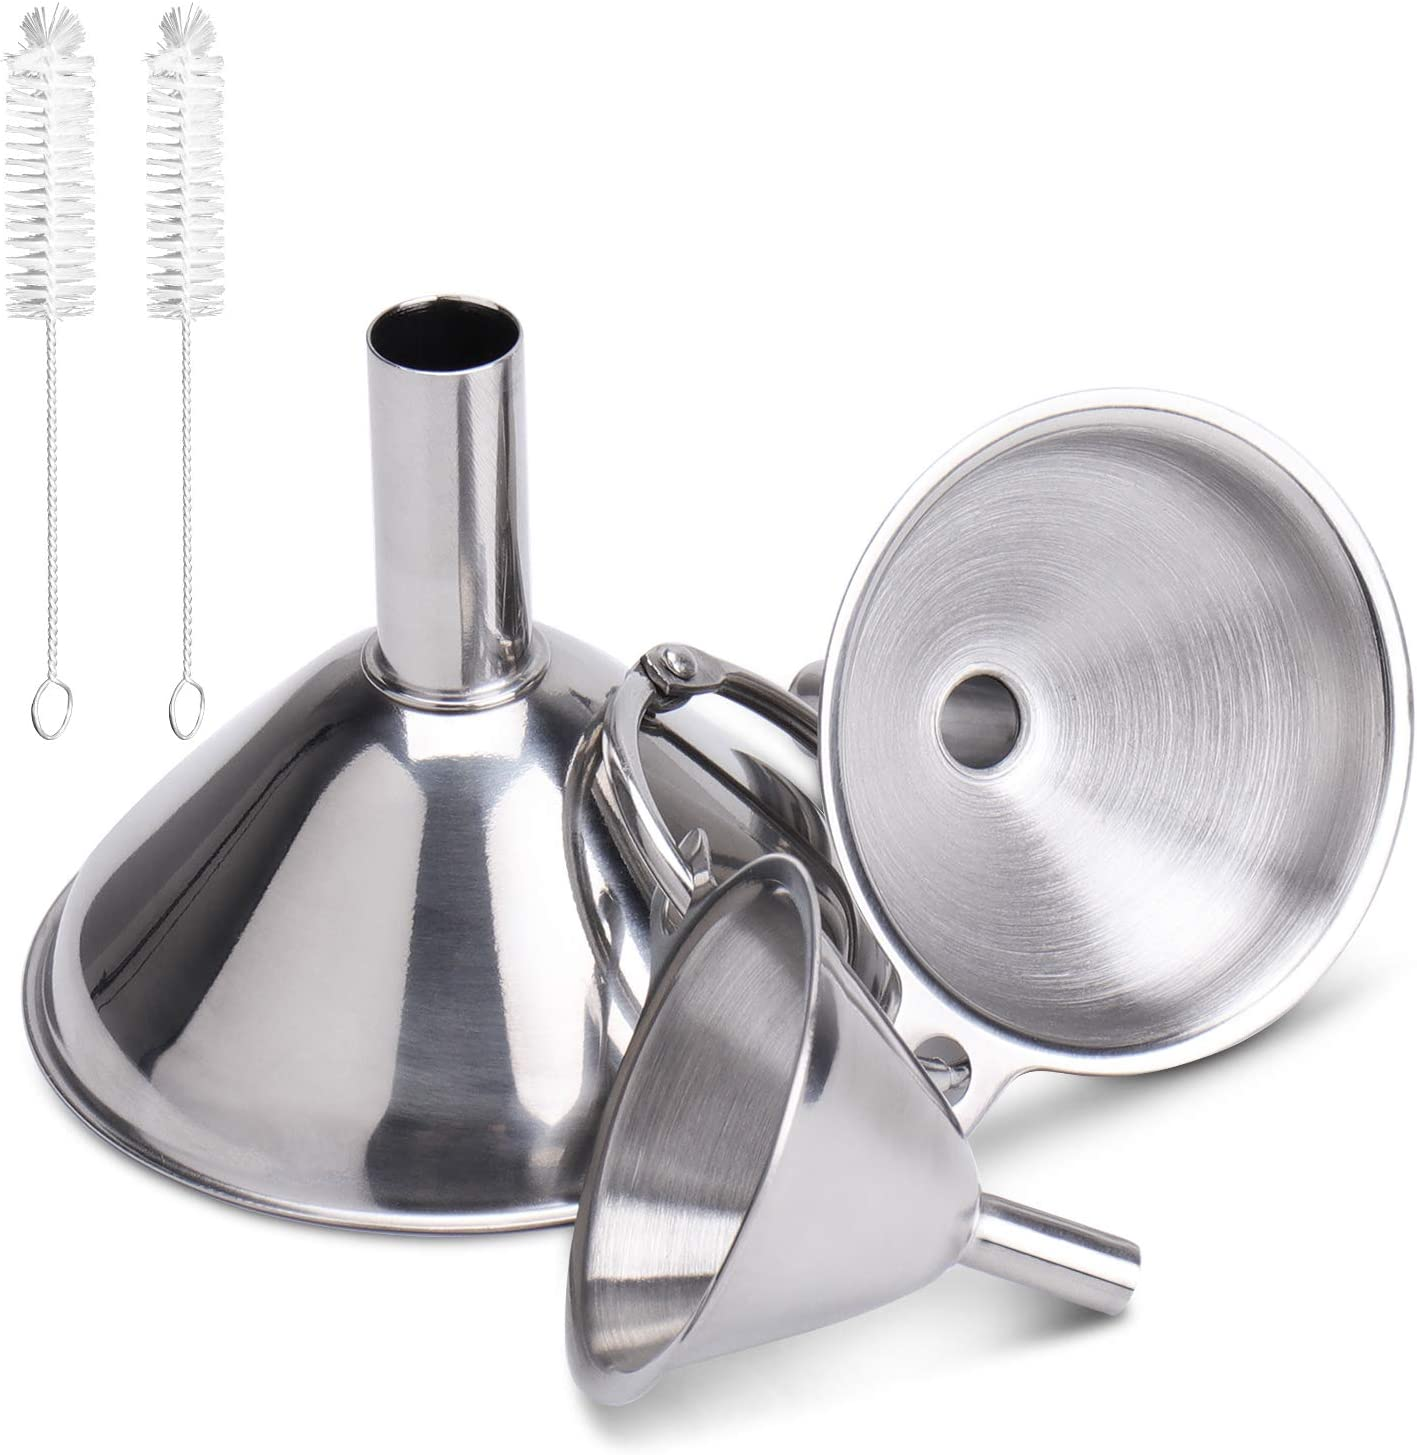 304 Funnels for Kitchen with 2 Cleaning Brushes, PEMOTech 3 Pack Small Stainless Steel Funnel Set Nesting Mini Funnels for Essentail Oil, Spices, Flask, Perfume